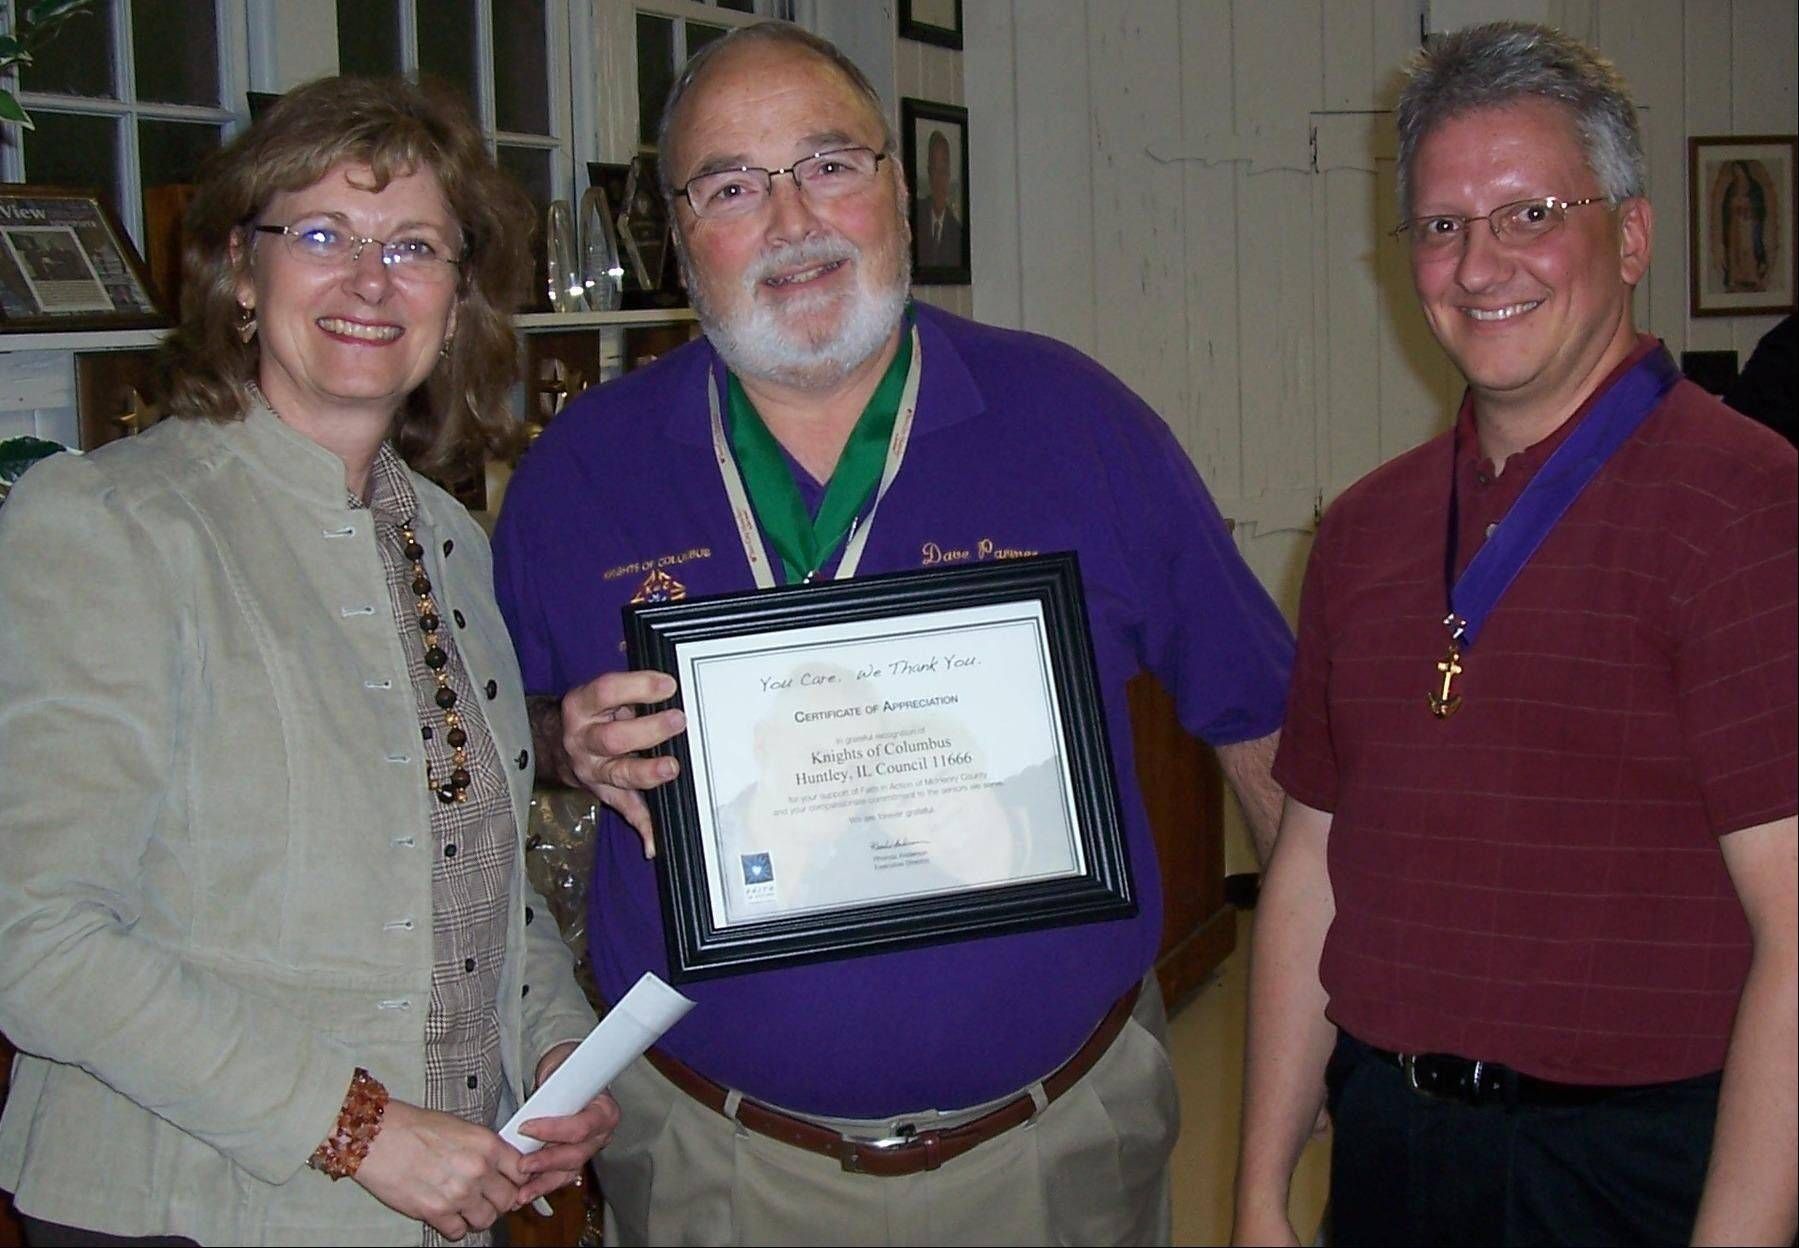 Rhonda Anderson, left, executive director of Faith in Action of McHenry County, presents a certificate of appreciation to Dave Parmer and Don Walz, right, of St. Mary of Huntley Knights of Columbus Council 11666 at the May meeting.